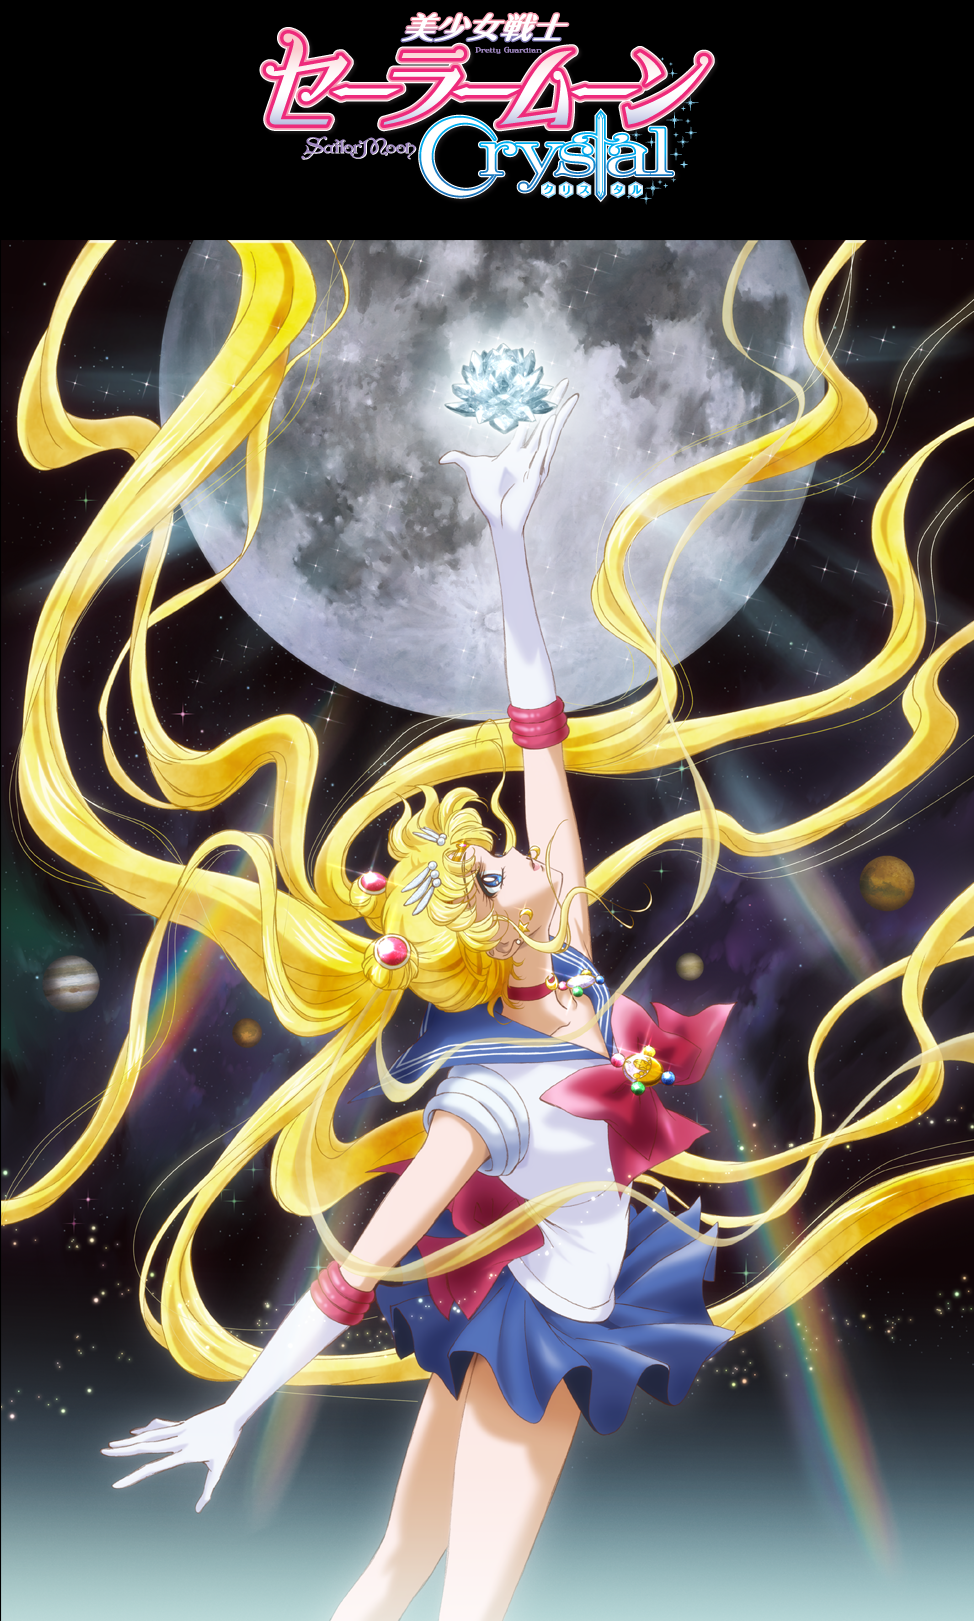 Bishoujo-Senshi-Sailor-Moon-Crystal-anime-image 2